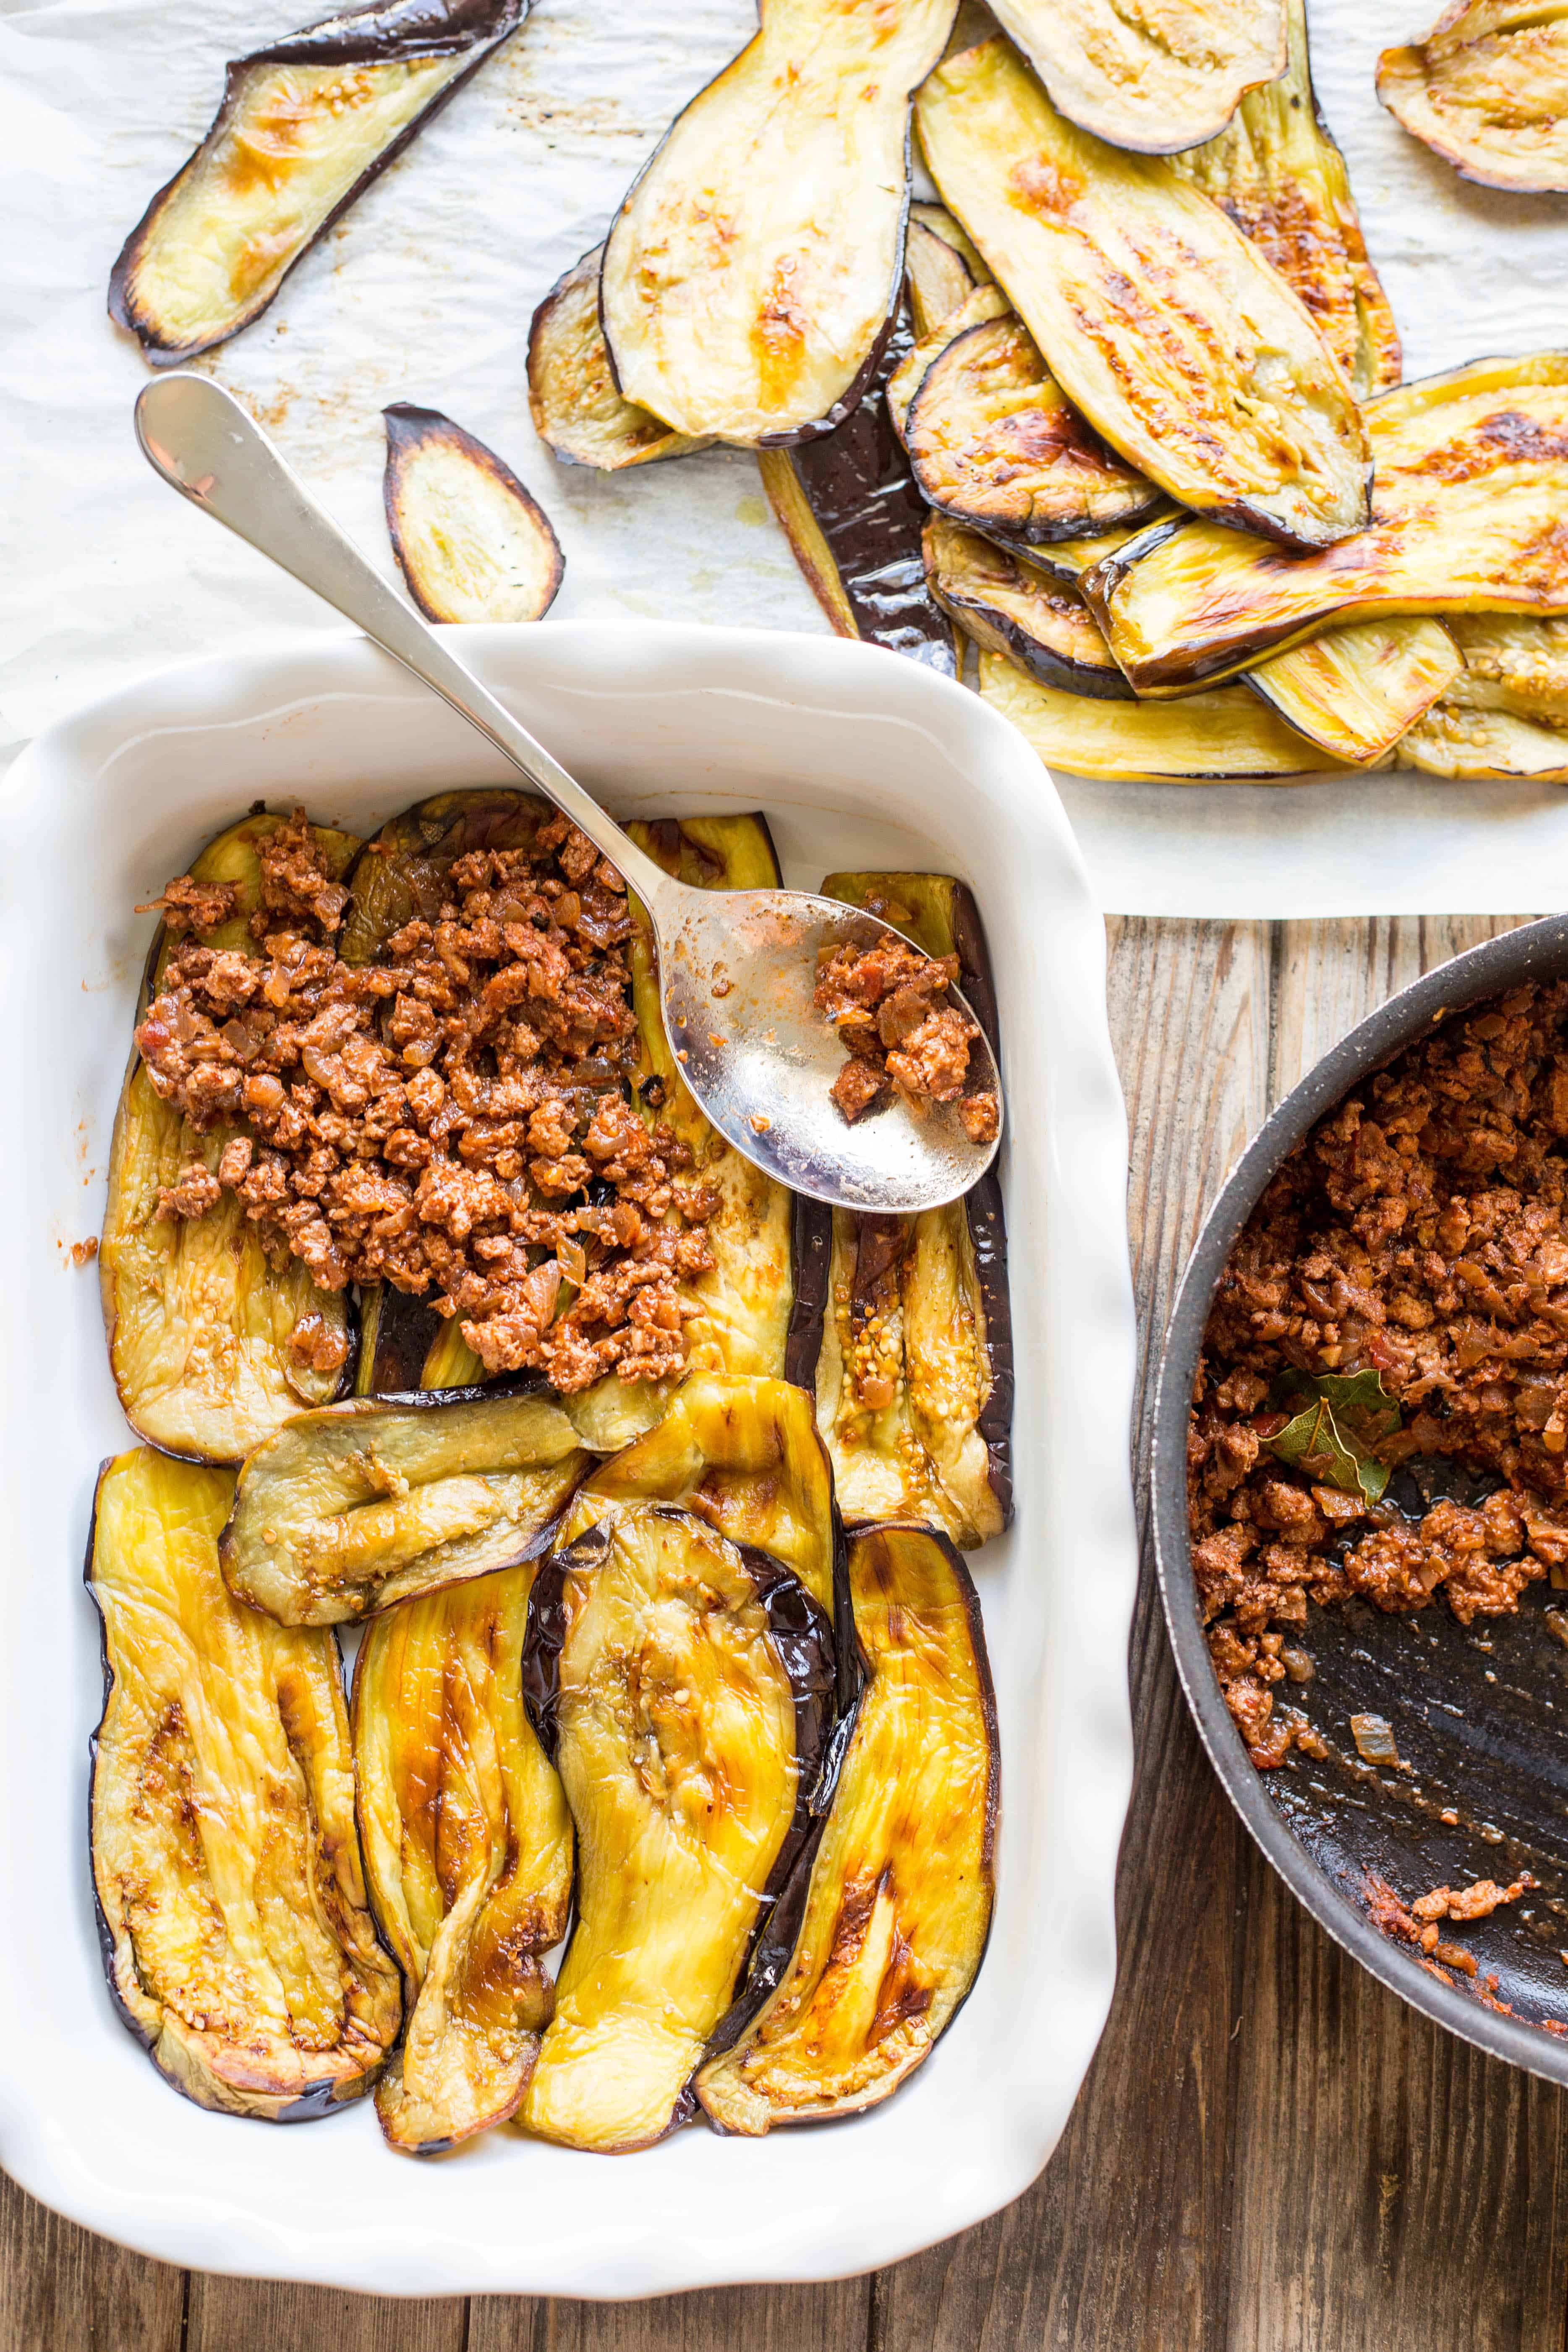 Assembling eggplant and ground turkey in a baking dish for moussaka.